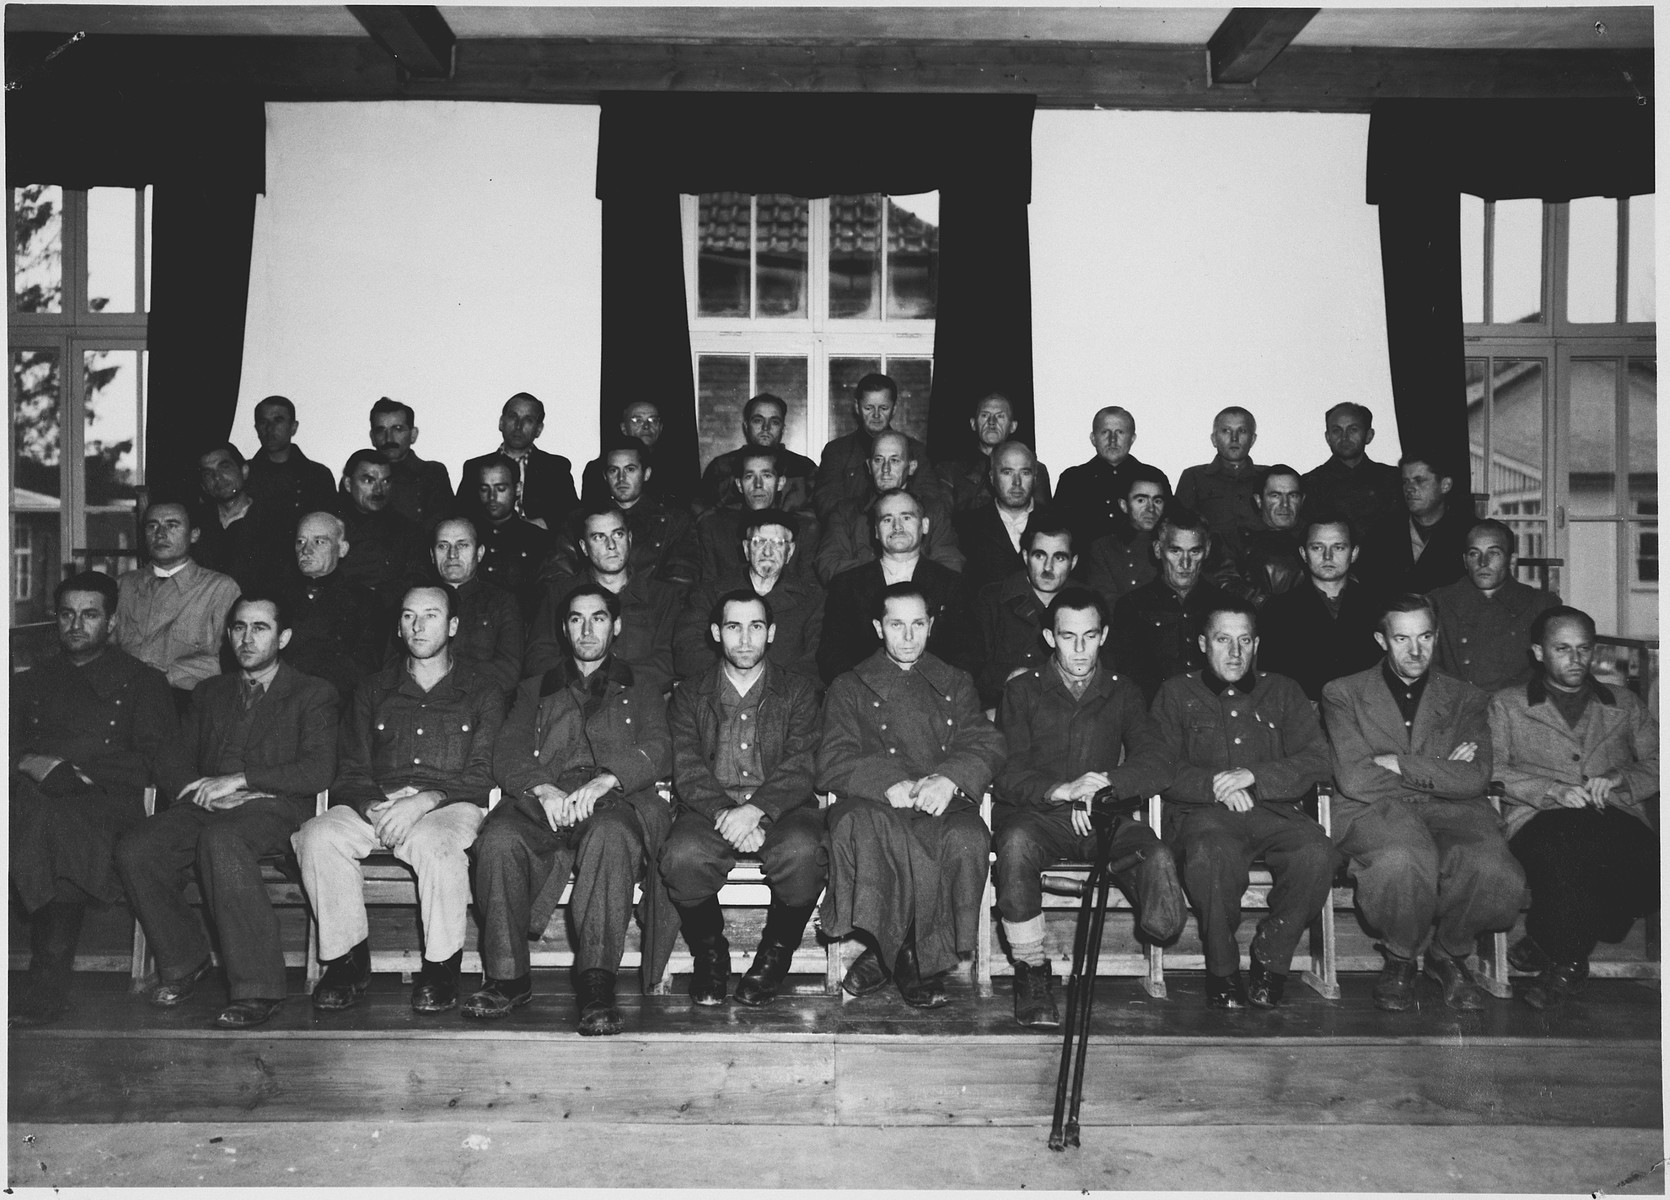 Group portrait of the defendants in the Dachau war crimes trial.  Among those pictured (front row, fifth from the right) is Josef Seuss, SS-Hauptscharfuehrer and a guard or warden at Dachau from 1933 to 1942.  He was convicted of war crimes, and executed at the Landsberg am Lech prison in  May 1946.